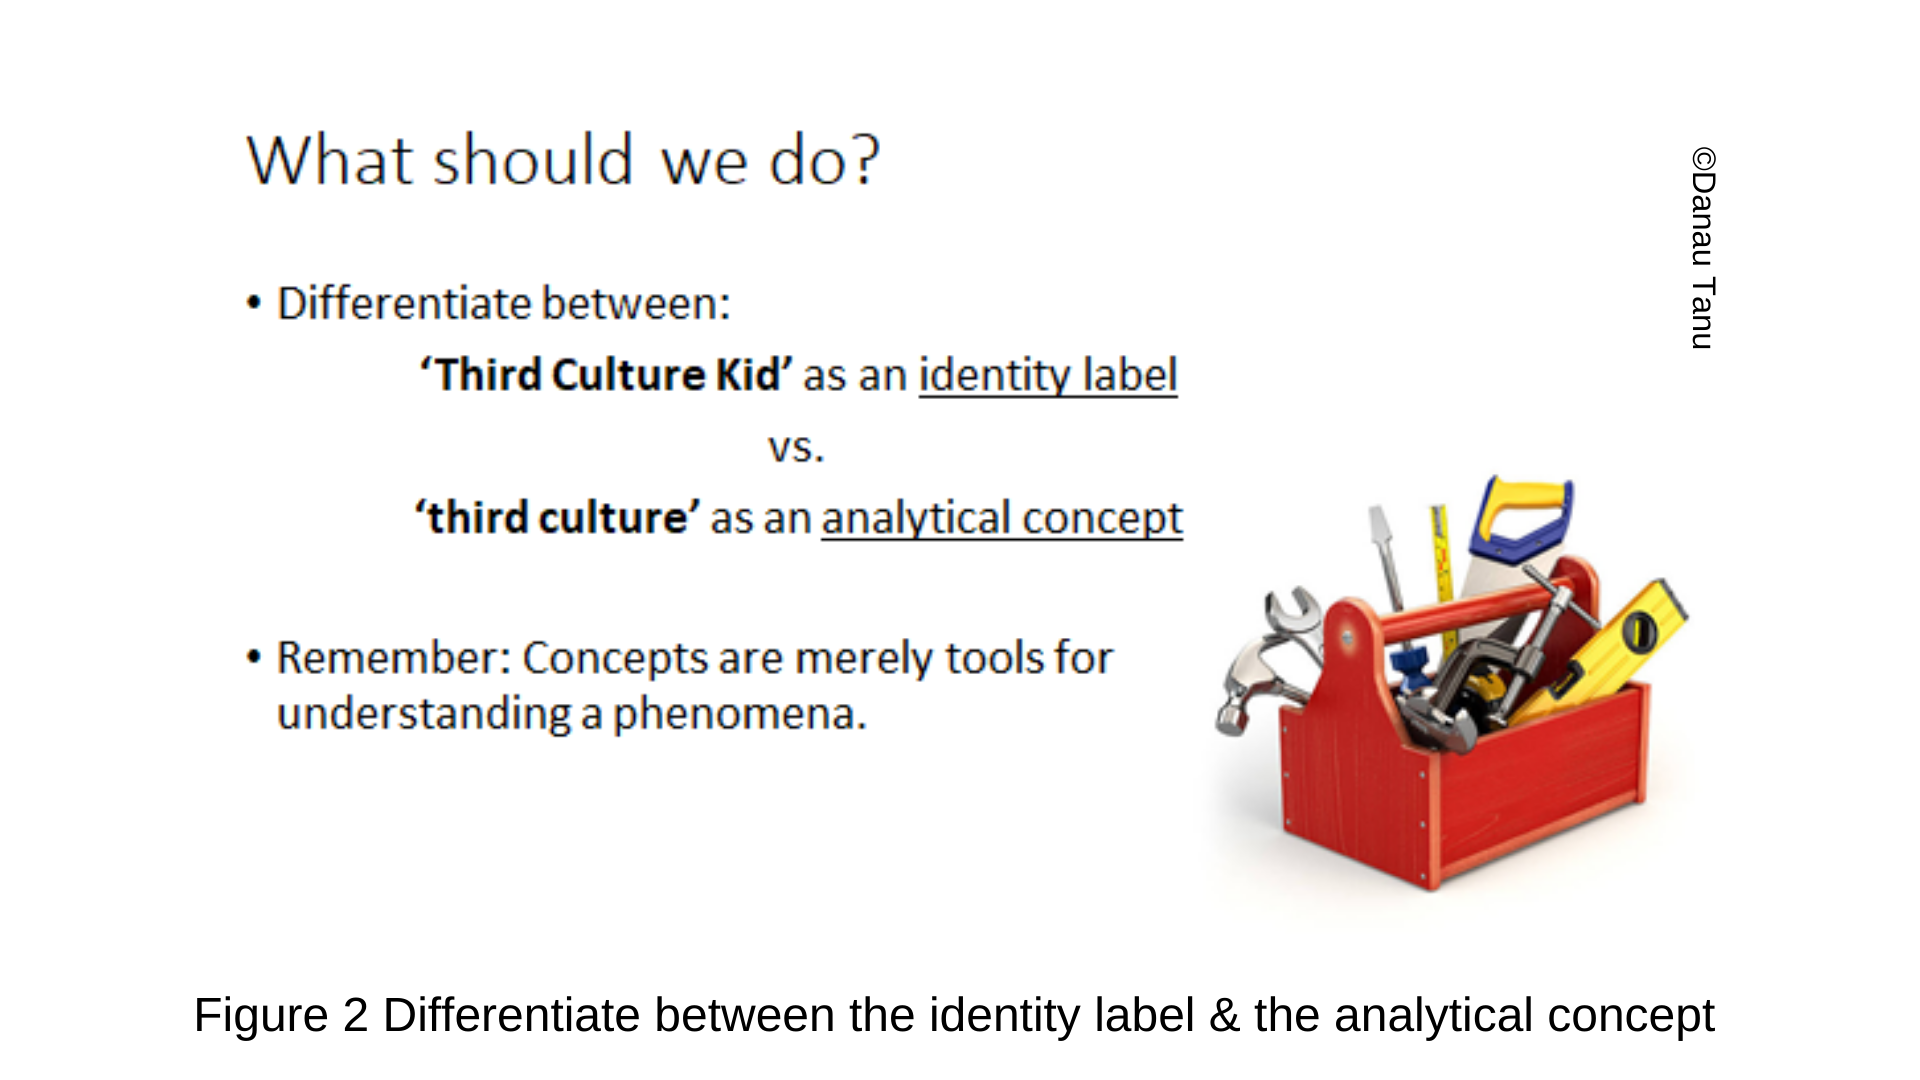 Figure 2 Differentiate between the identity label & the analytical concept